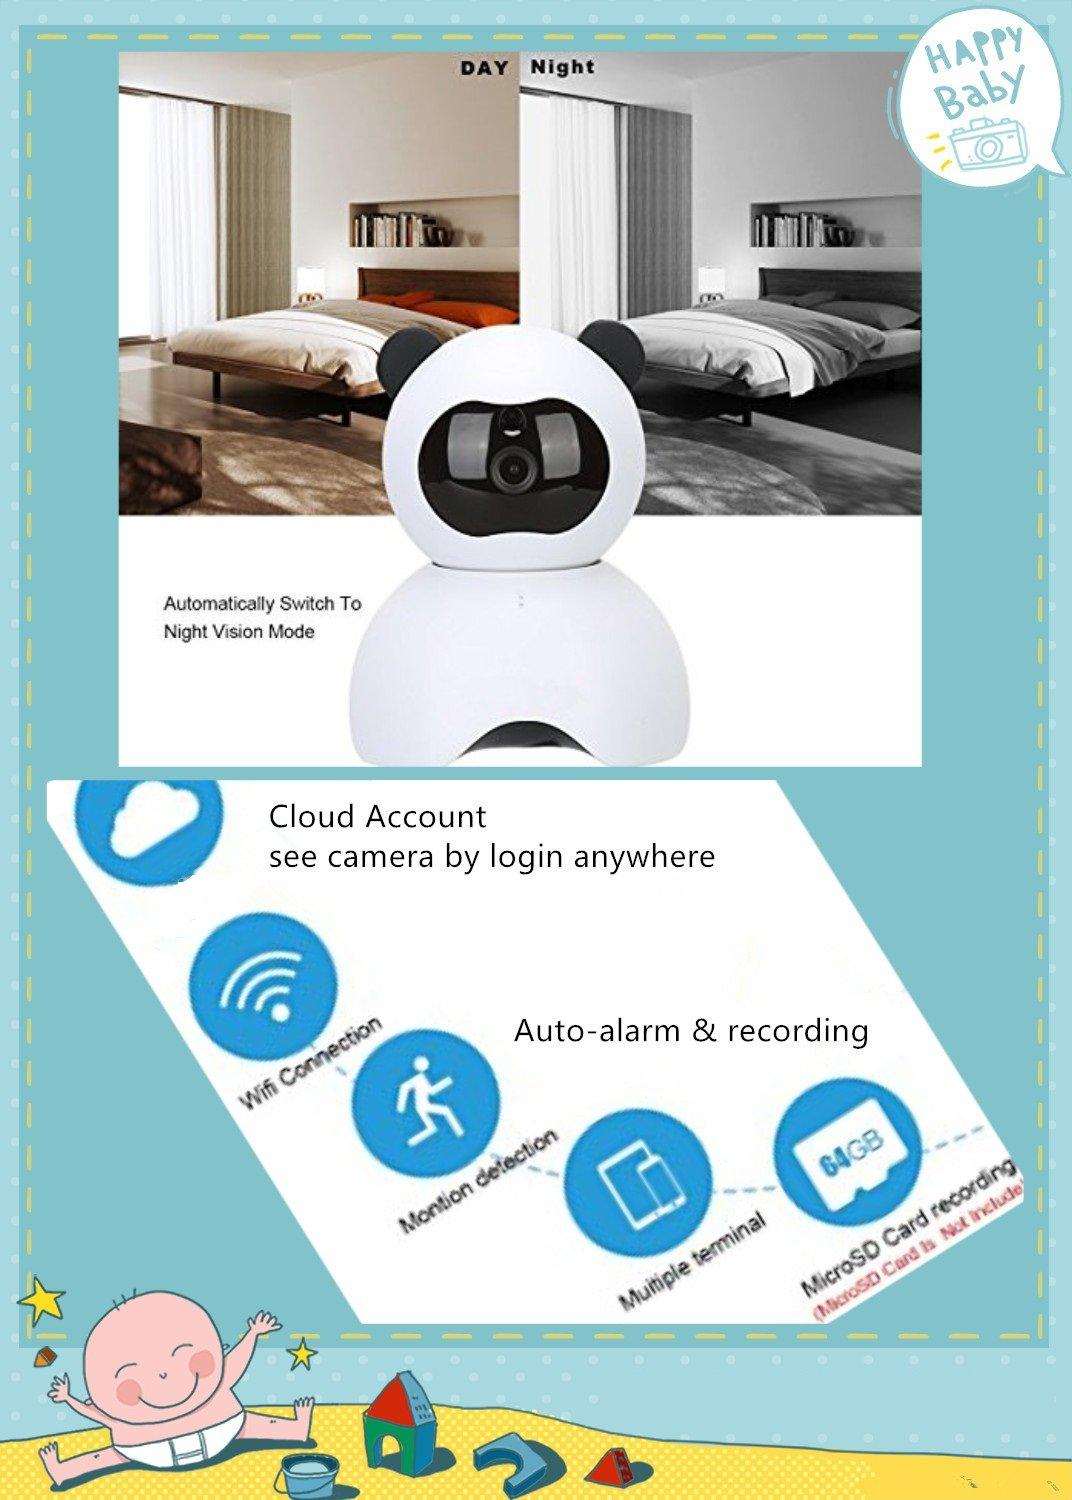 Details about EsiCam Baby Monitor Wifi Hidden Camera Nanny Camera for Smart  Phone, Toy Panda